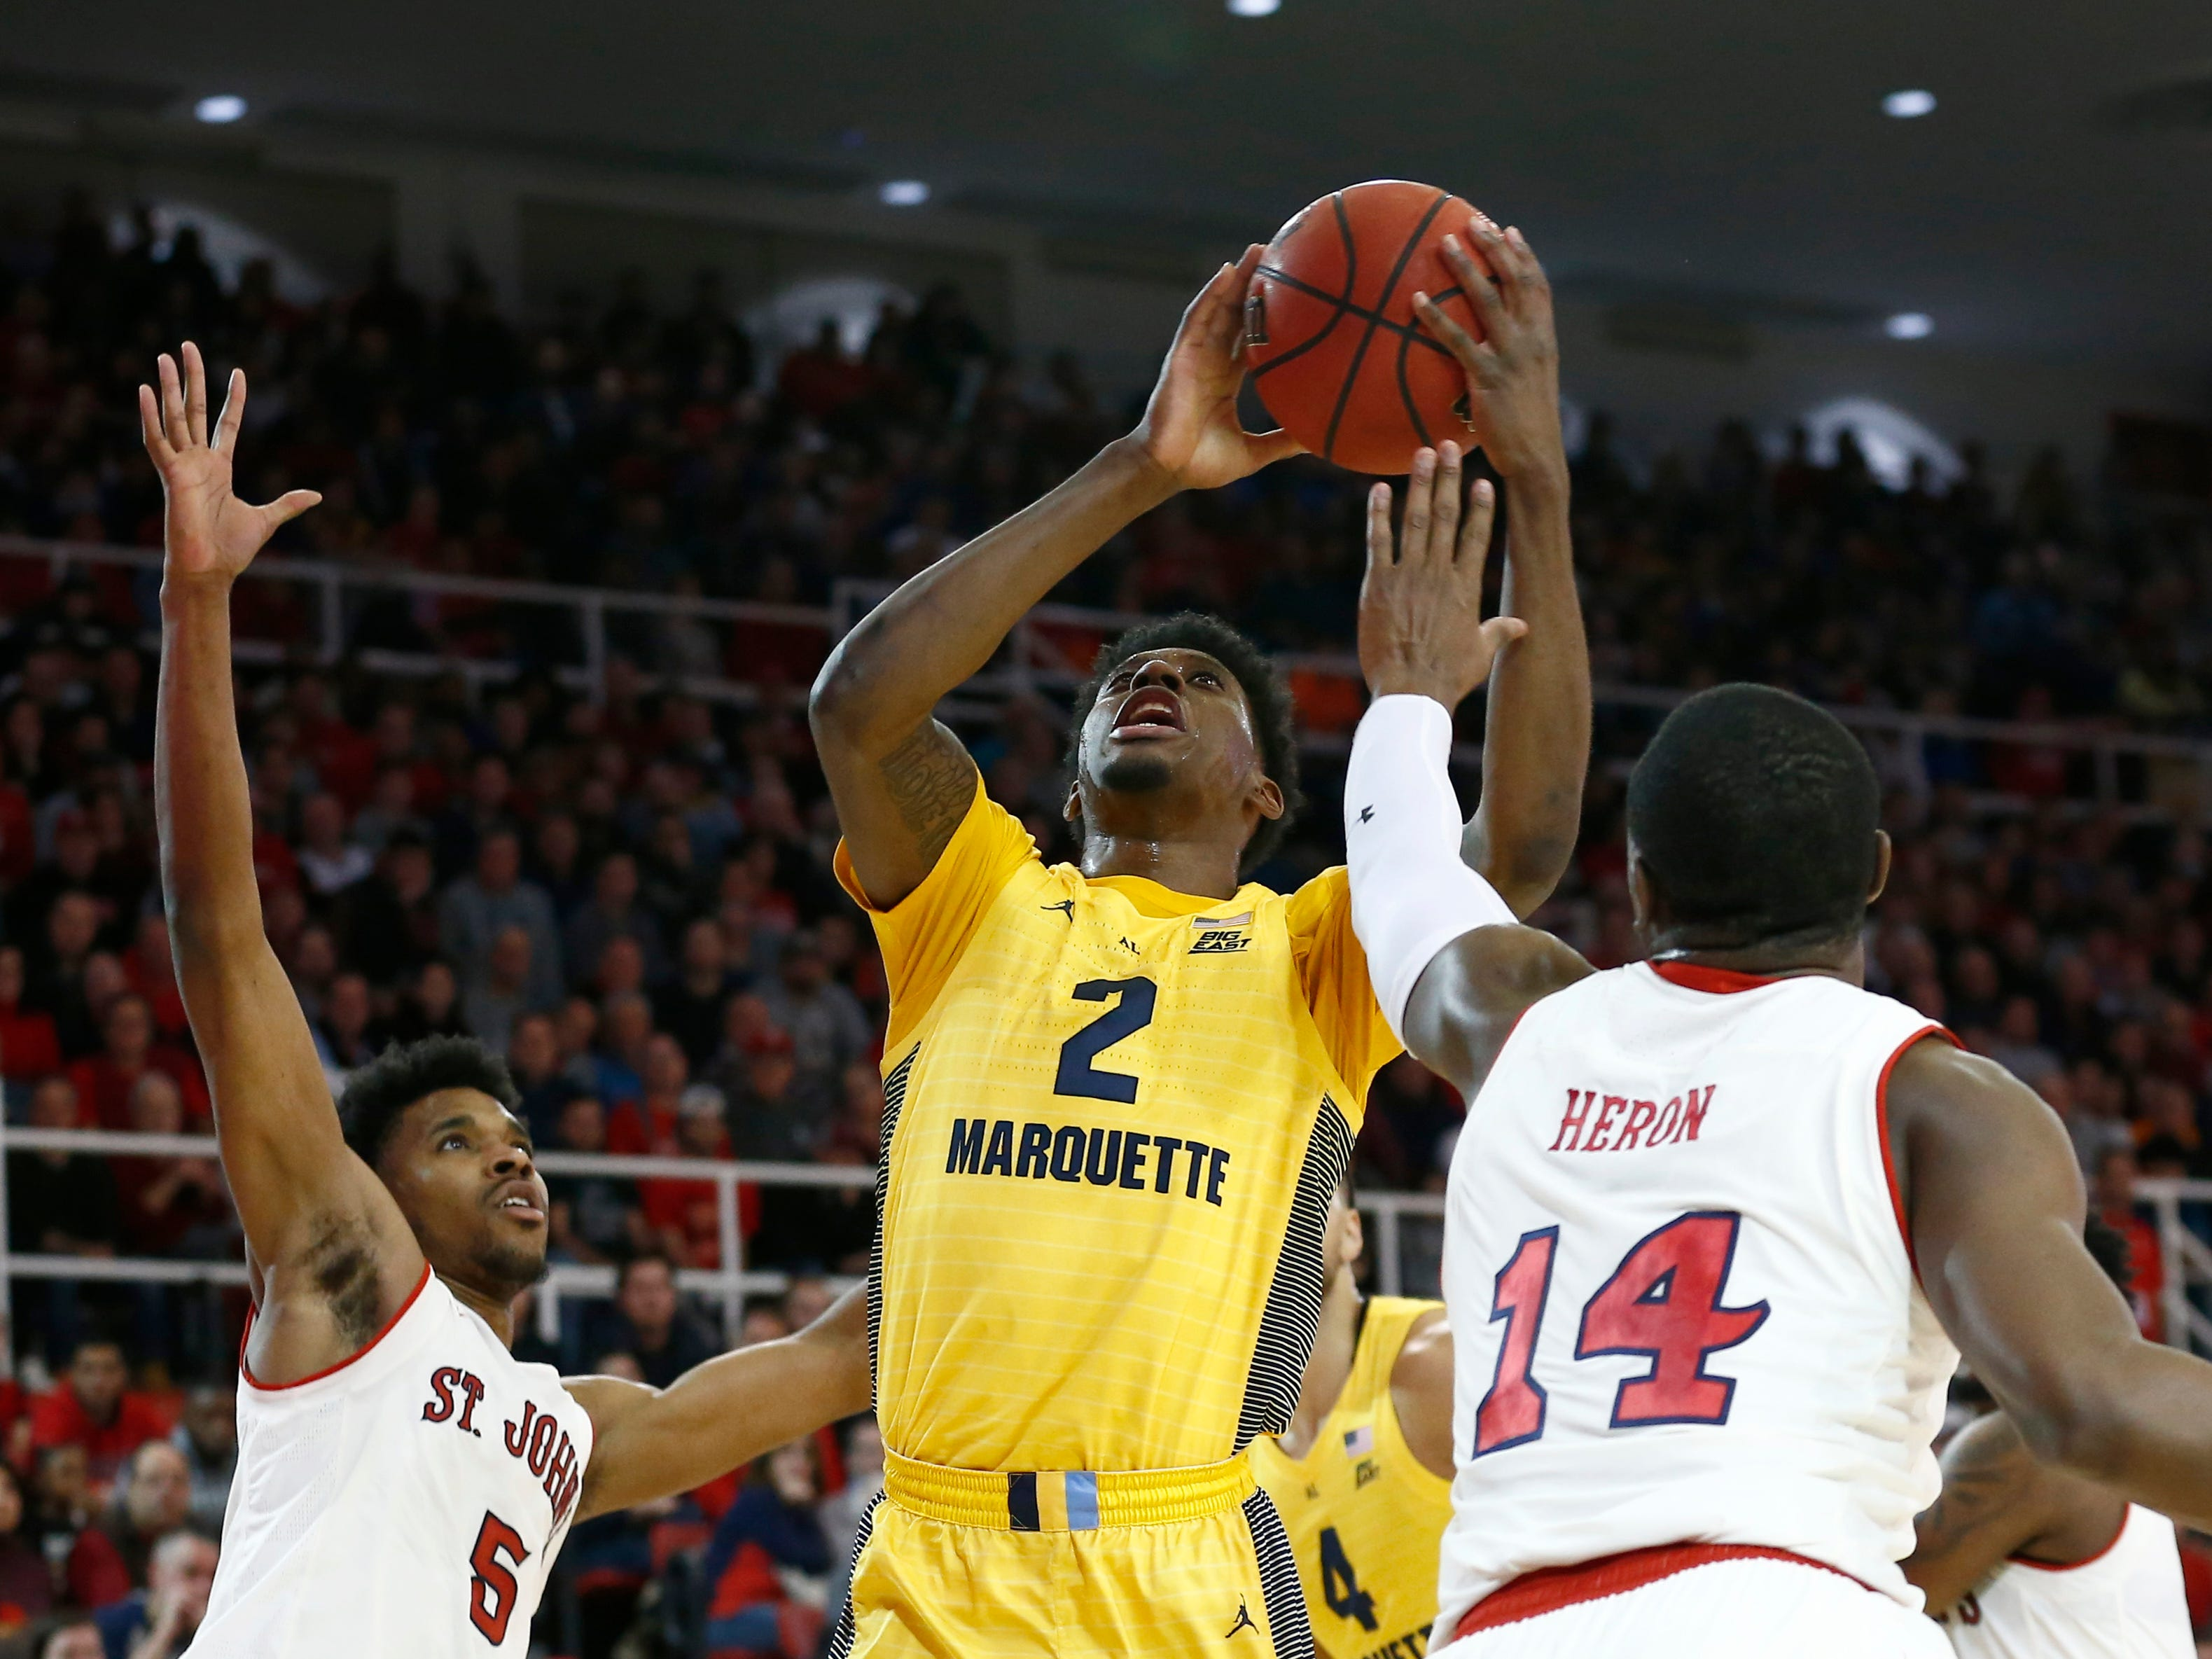 Jan 1, 2019; Queens, NY, USA; Marquette Golden Eagles forward Sacar Anim (2)  shoots against St. John's Red Storm guard Justin Simon (5) and guard Mustapha Heron (14) in the first half at Carnesecca Arena. Mandatory Credit: Nicole Sweet-USA TODAY Sports